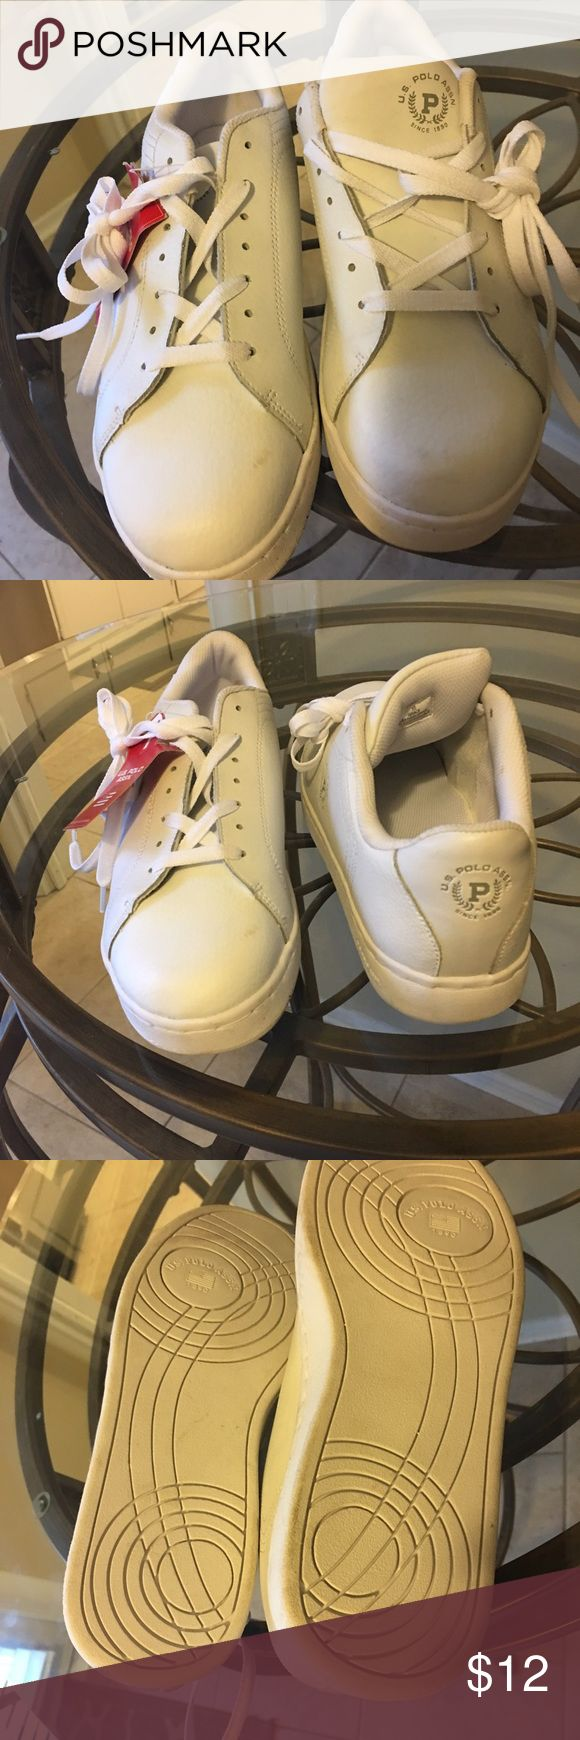 US Polo Association tennis shoes US Polo Association tennis shoes. White. New with tags. Size 10 women's. US Polo Association Shoes Sneakers